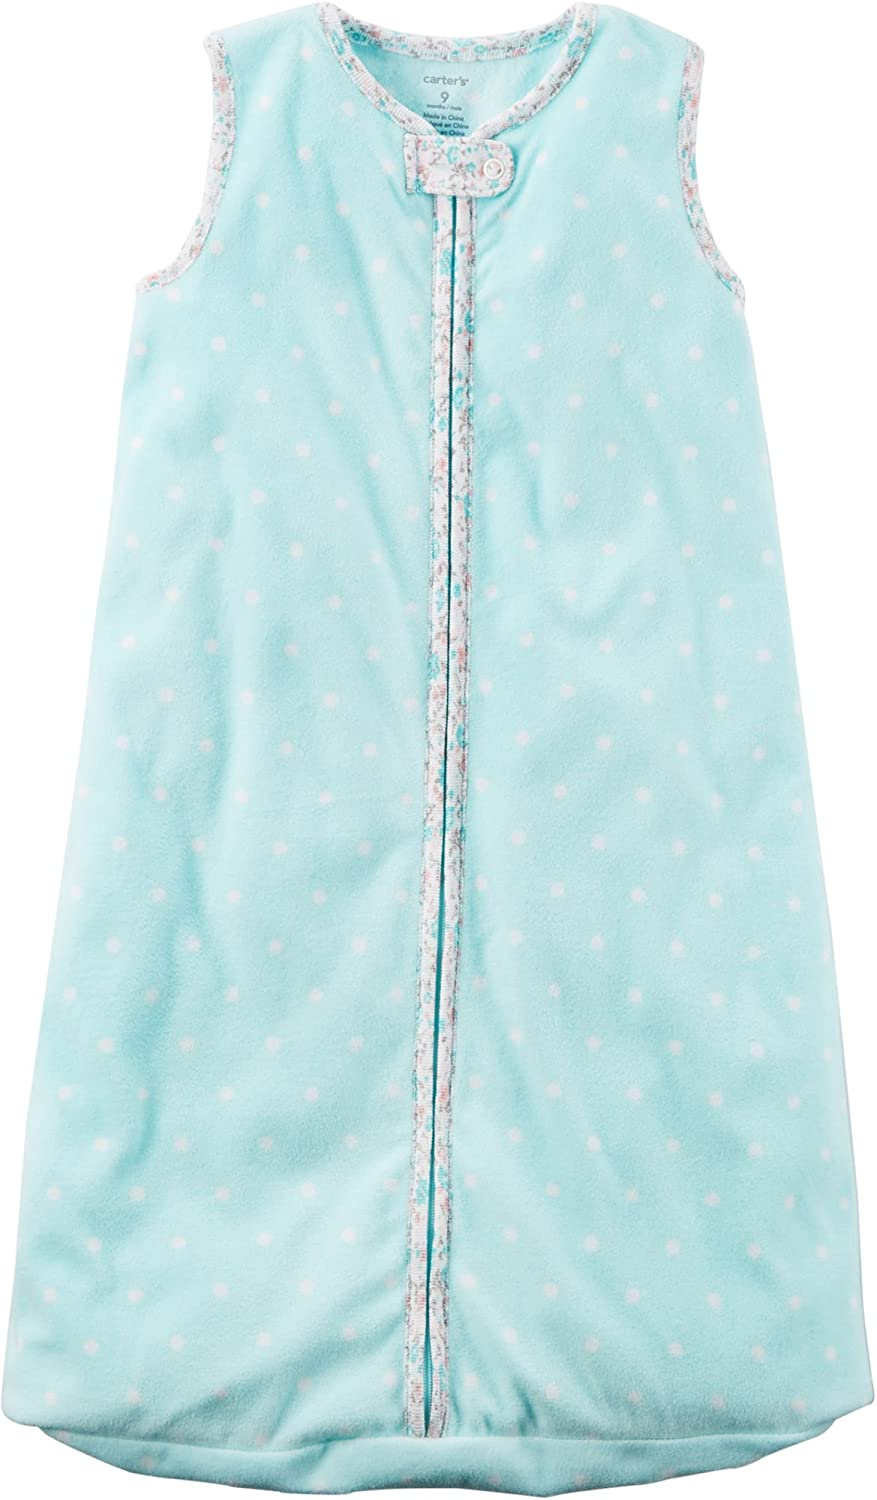 Carter's Baby Girls' Polka Dot Sleep Bag 118H412